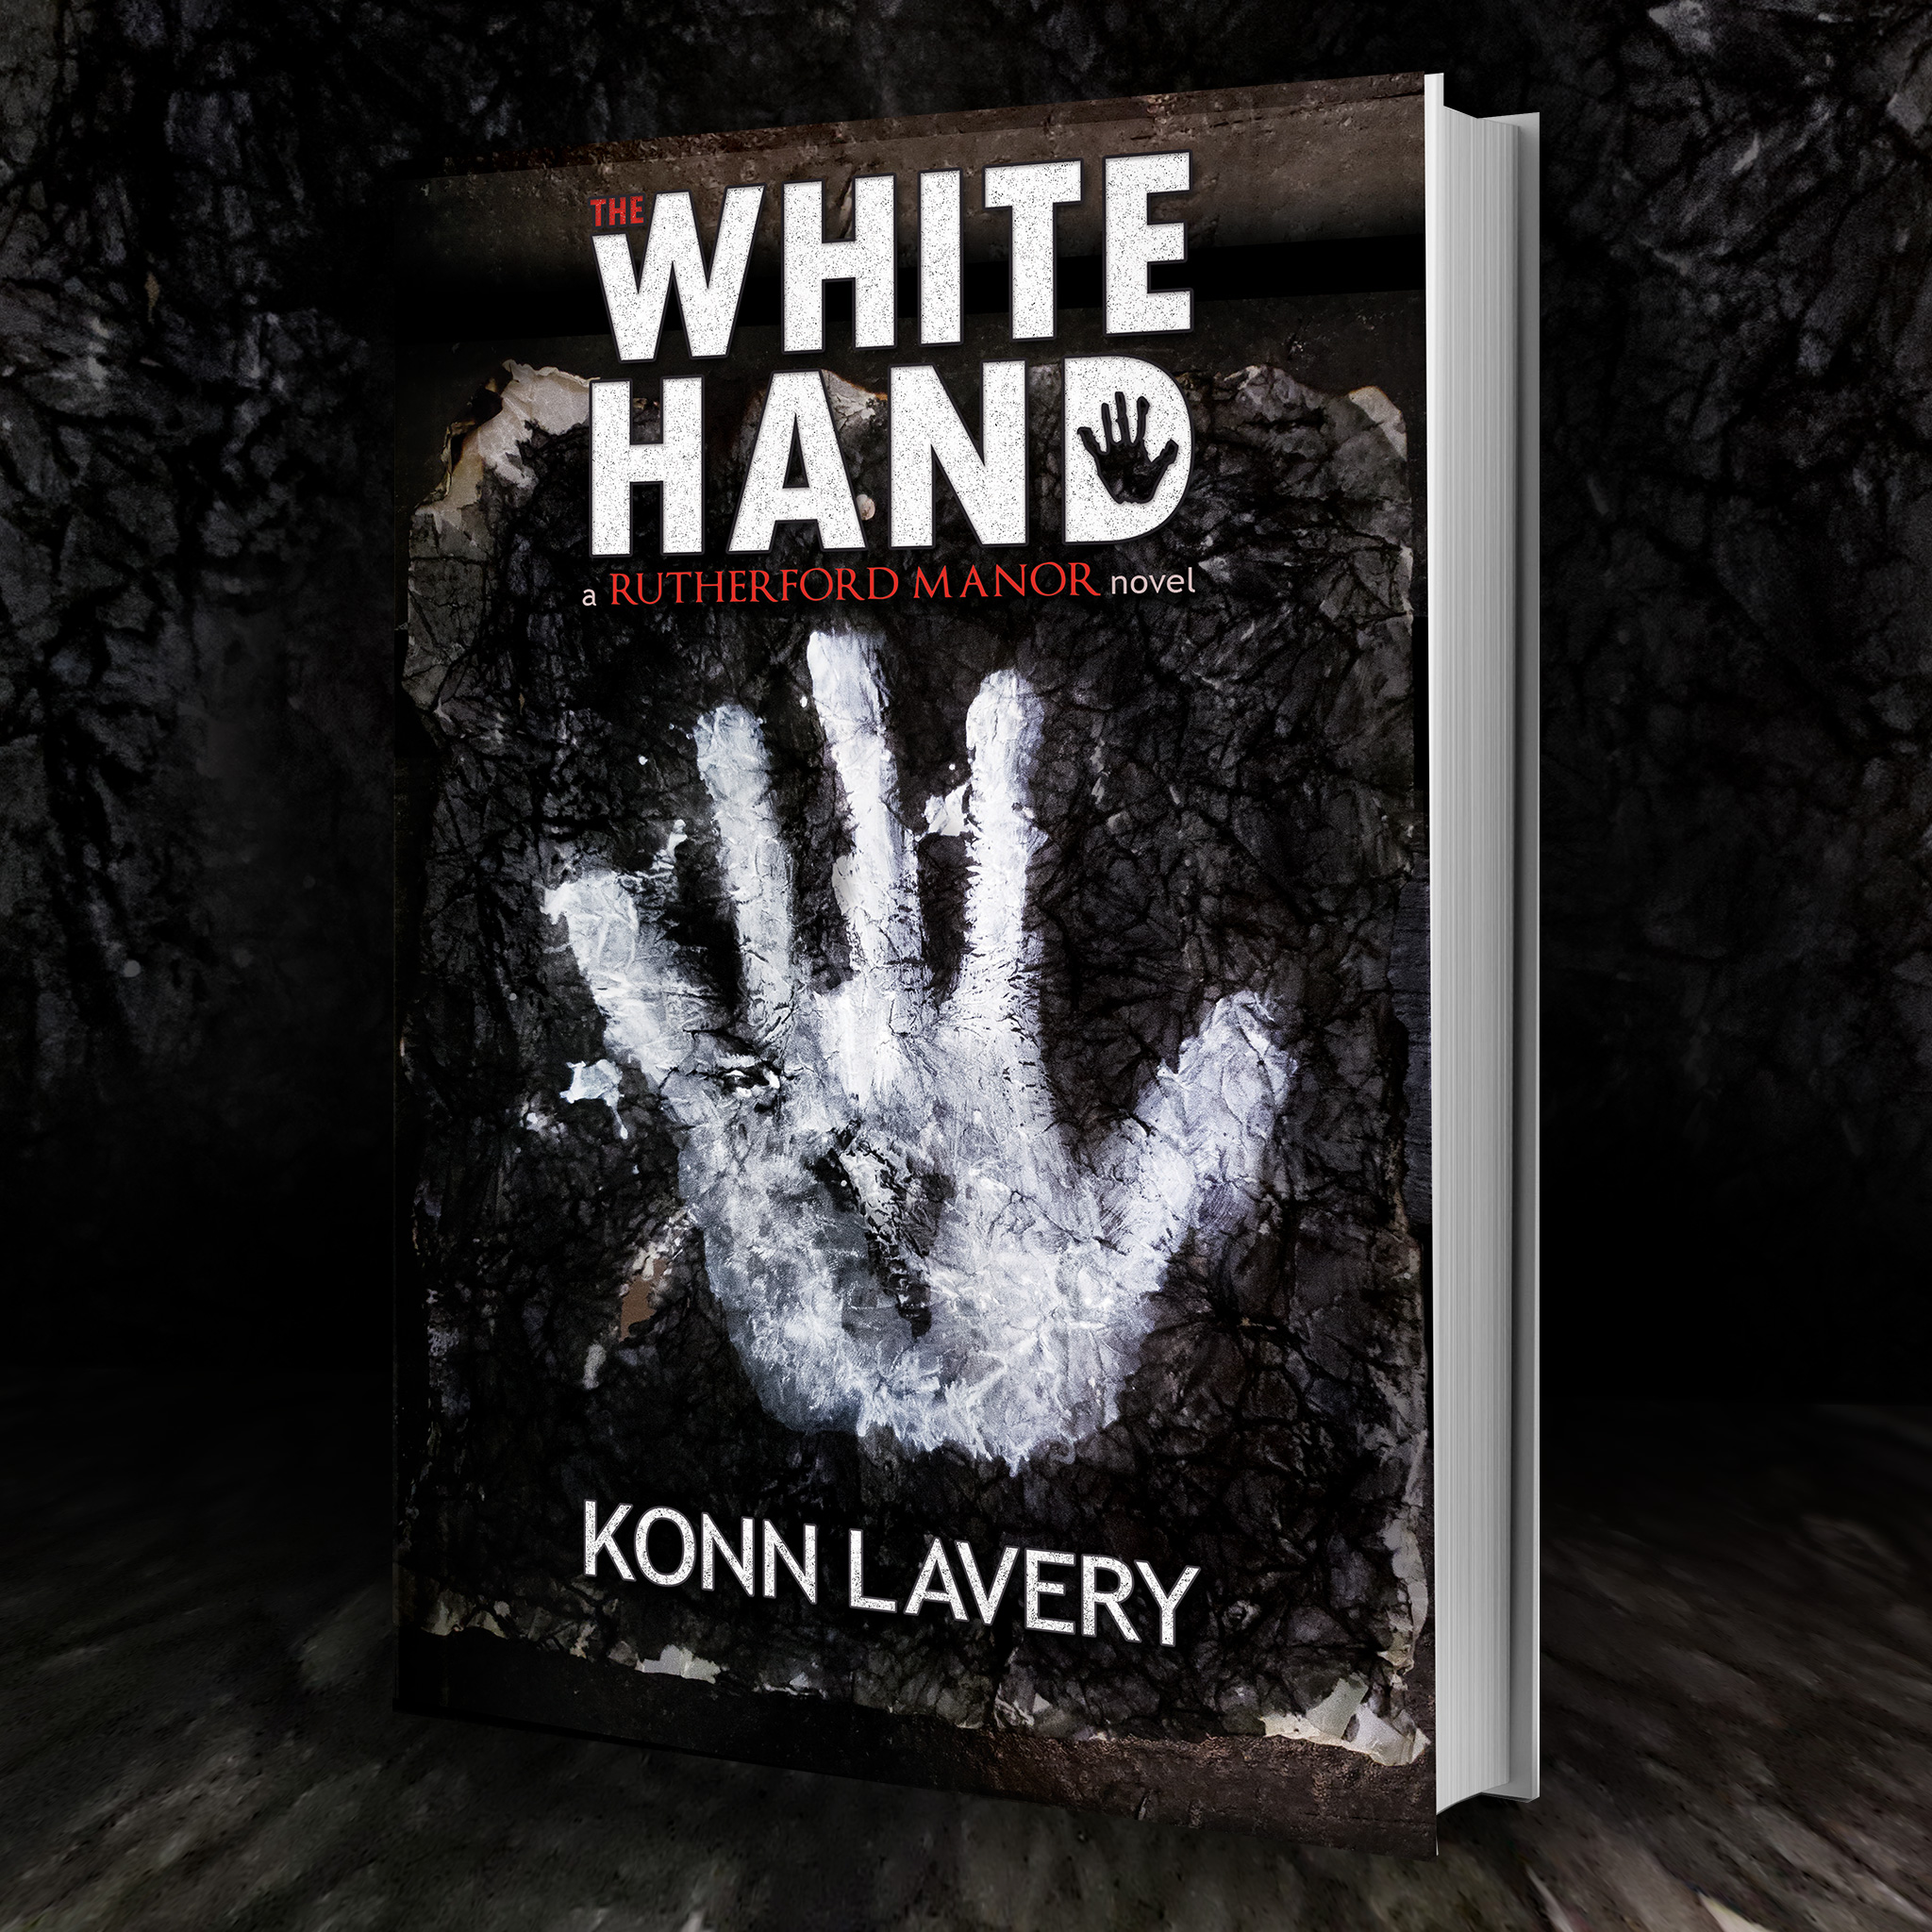 Cover and Synopsis Reveal of The White Hand